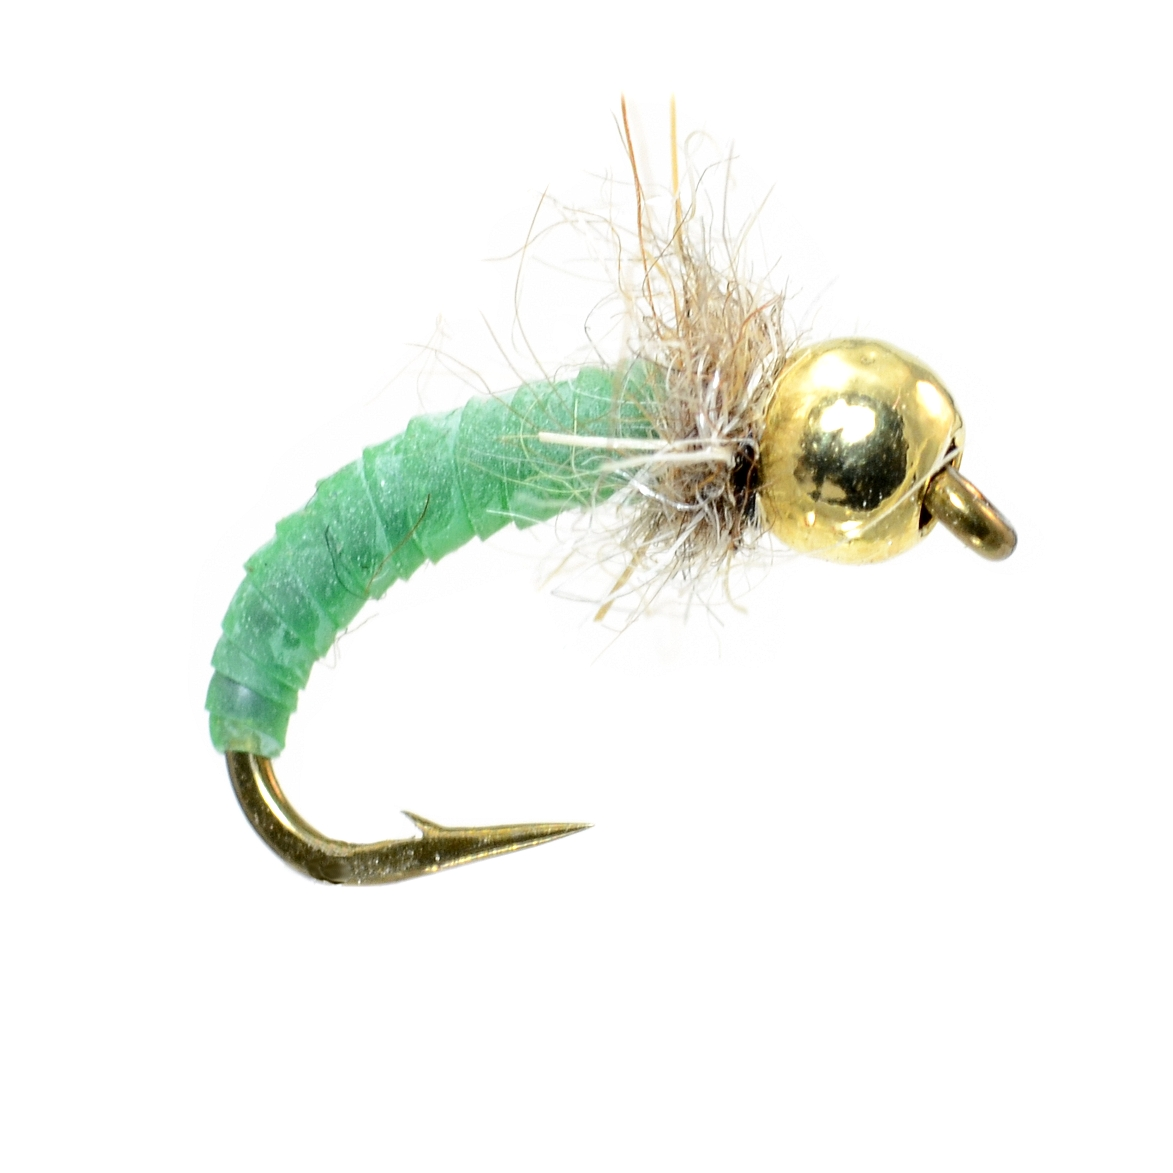 Beginner fly tying easy caddis pupa fly fish food for Beginning fly fishing